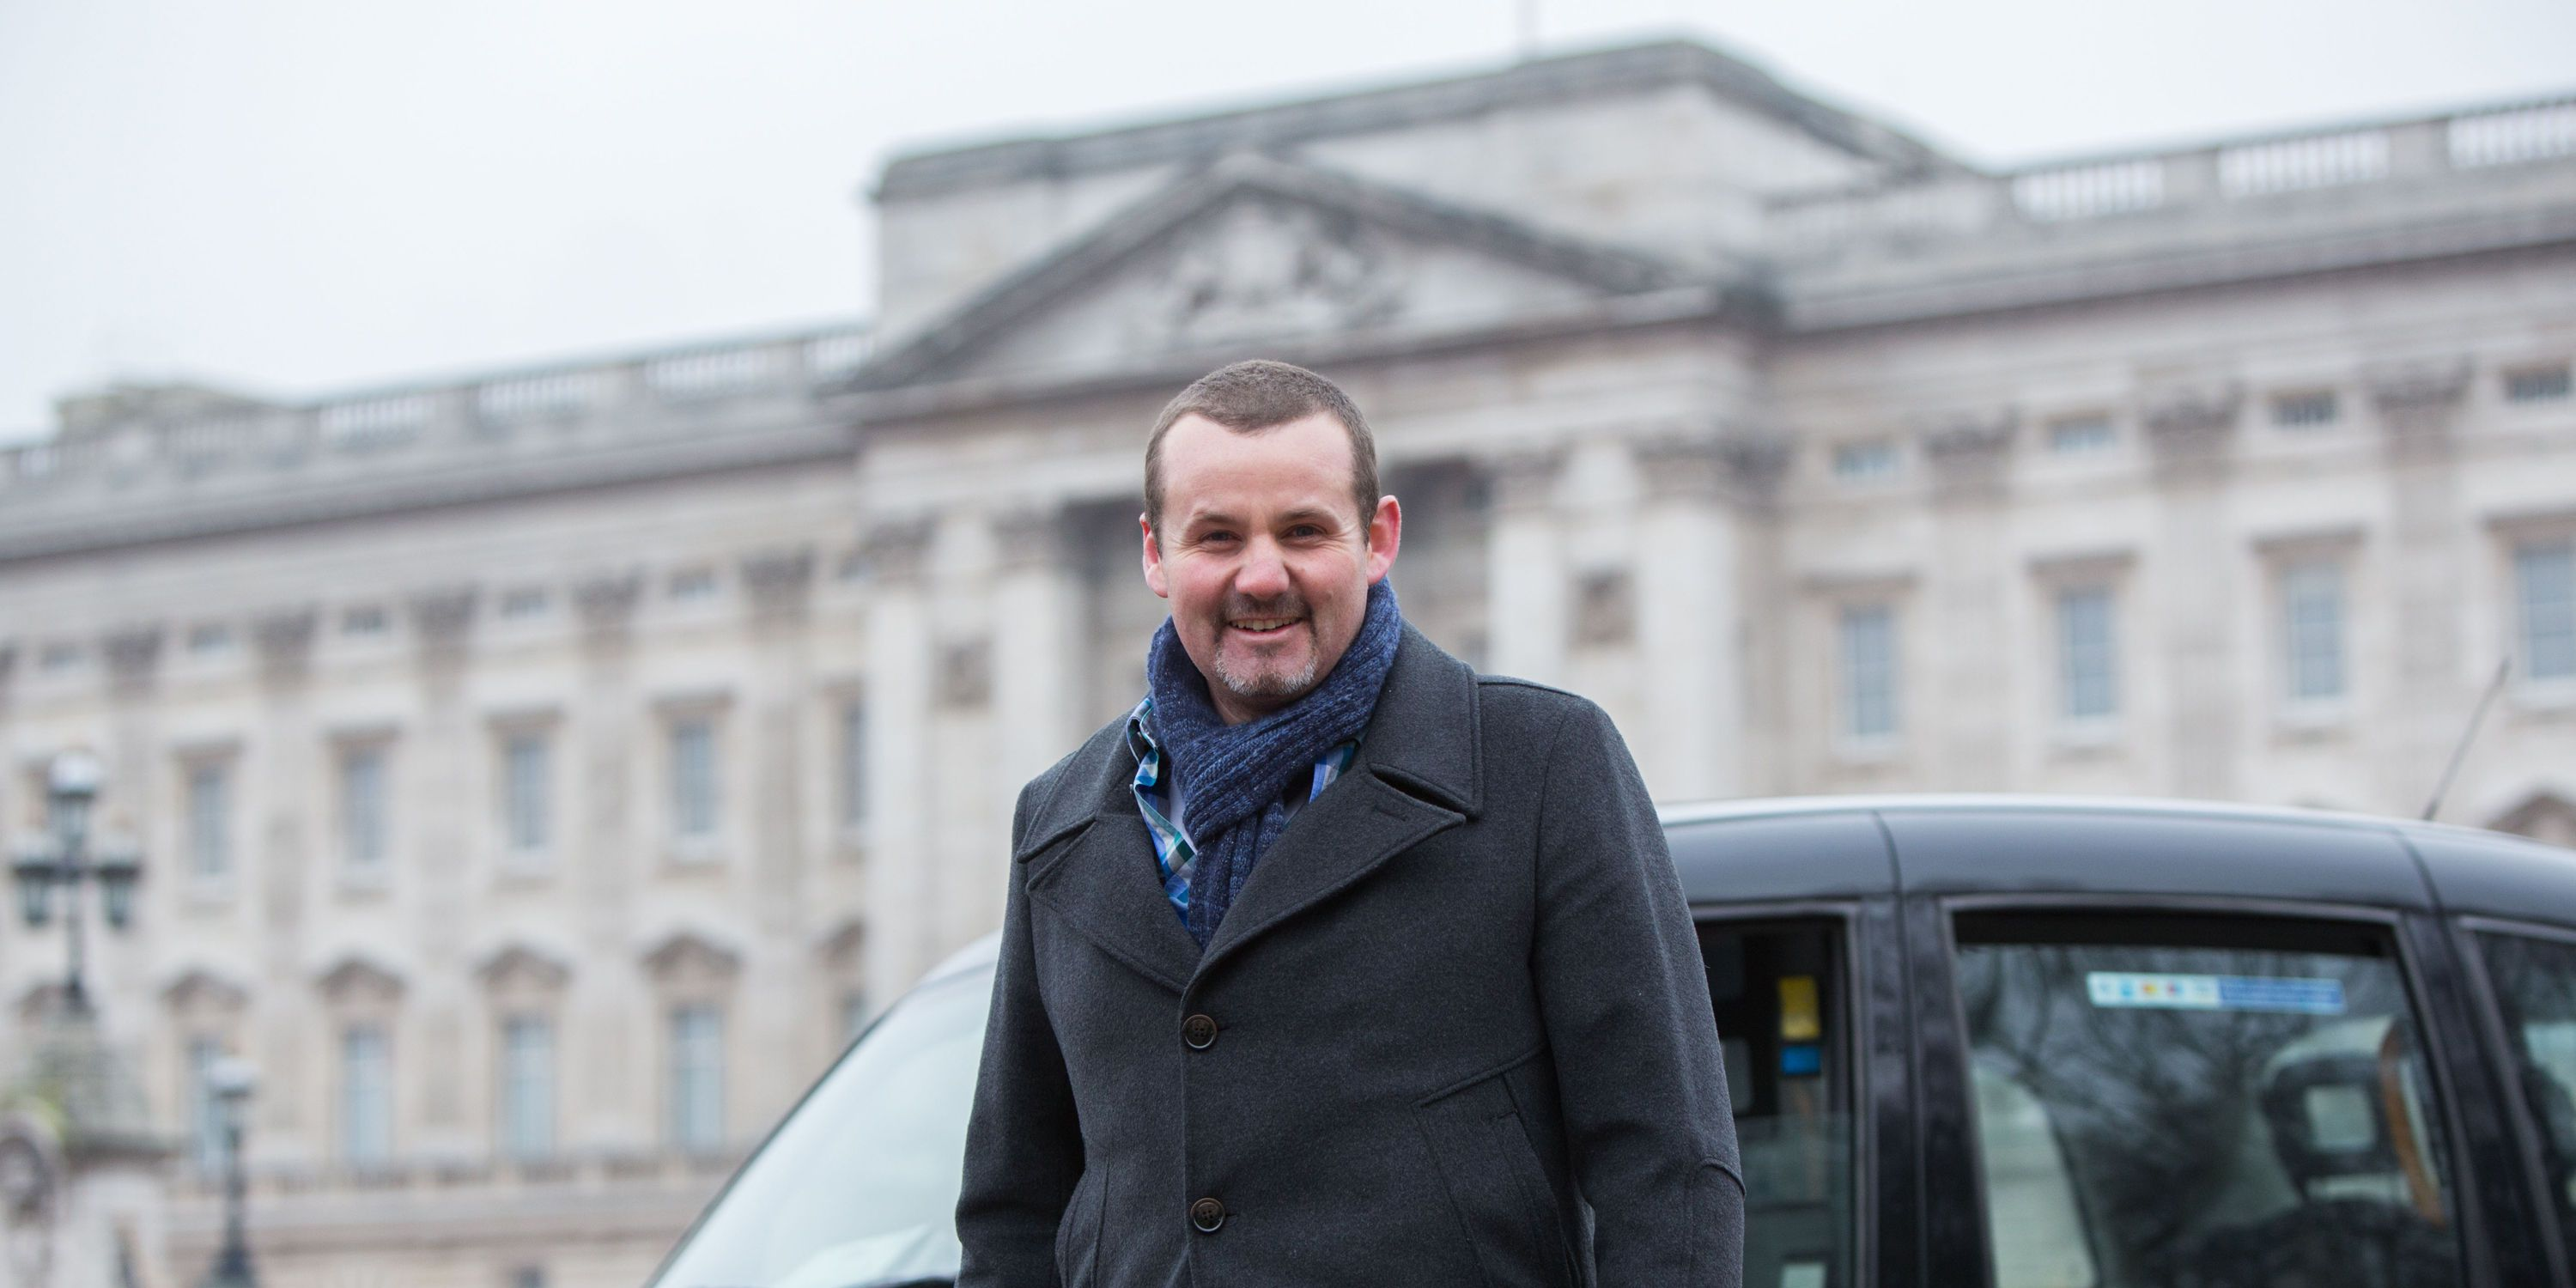 Toadie Rebecchi visits Buckingham Palace in Neighbours